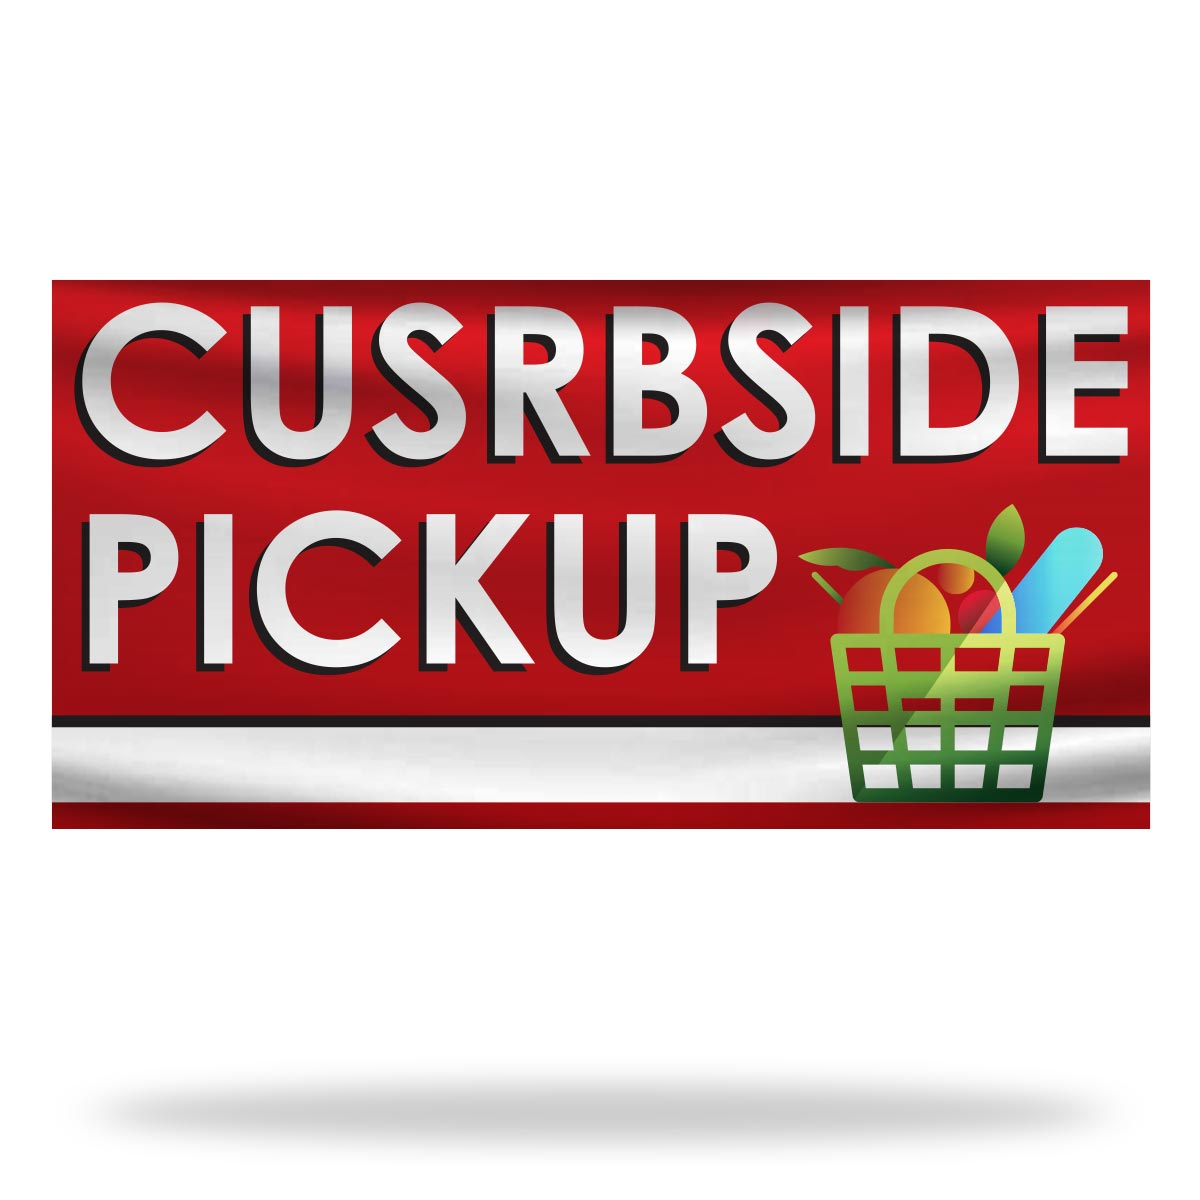 Curbside Pickup Flags & Banners Design 06